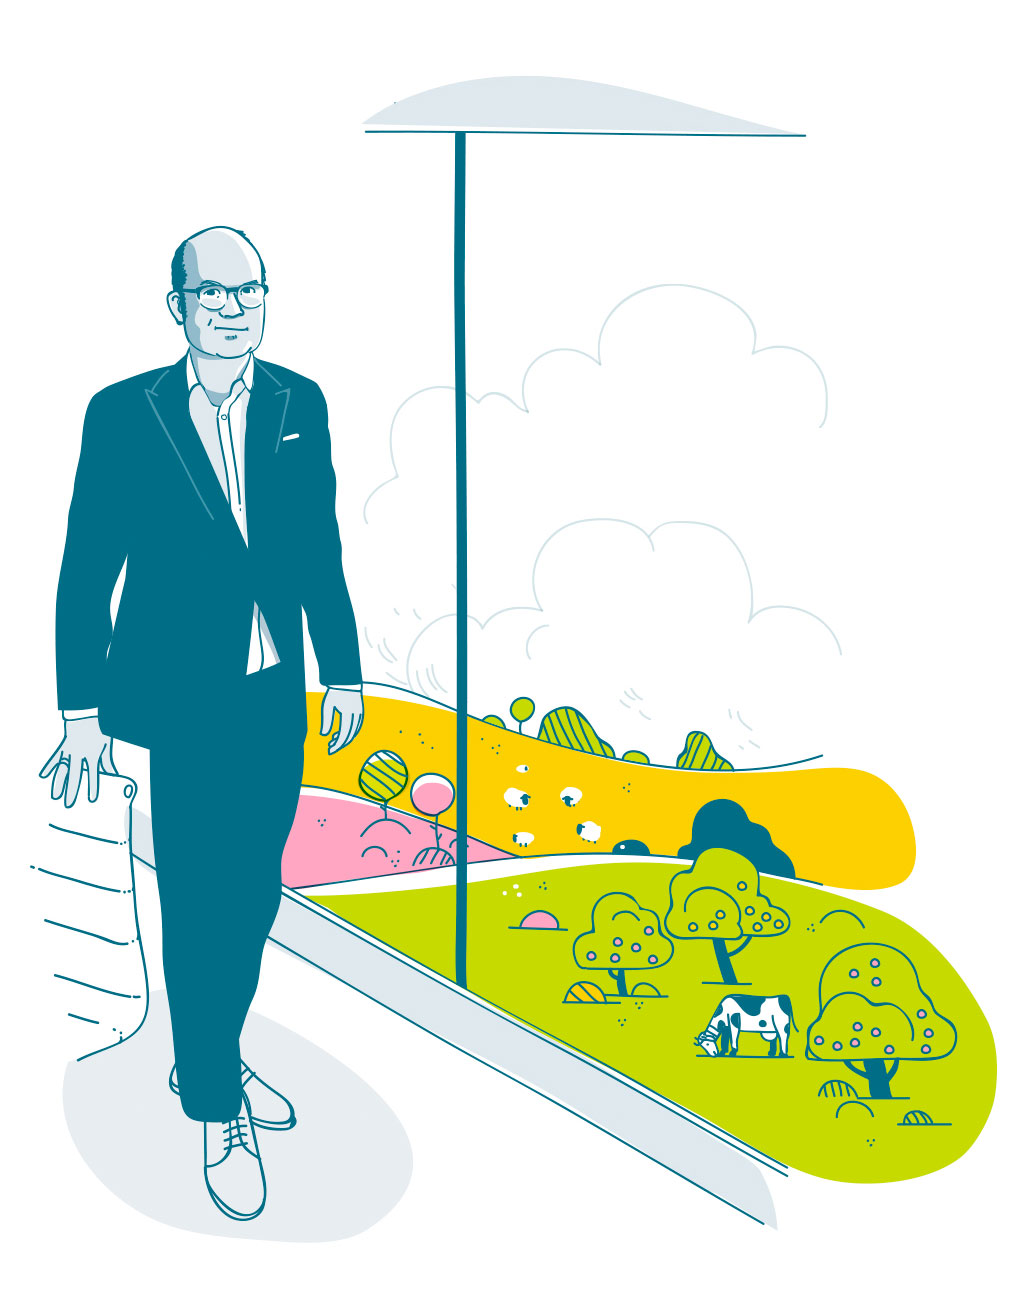 Peter Dietiker, division manager at Energie 360° (Illustration: Christoph Frei)